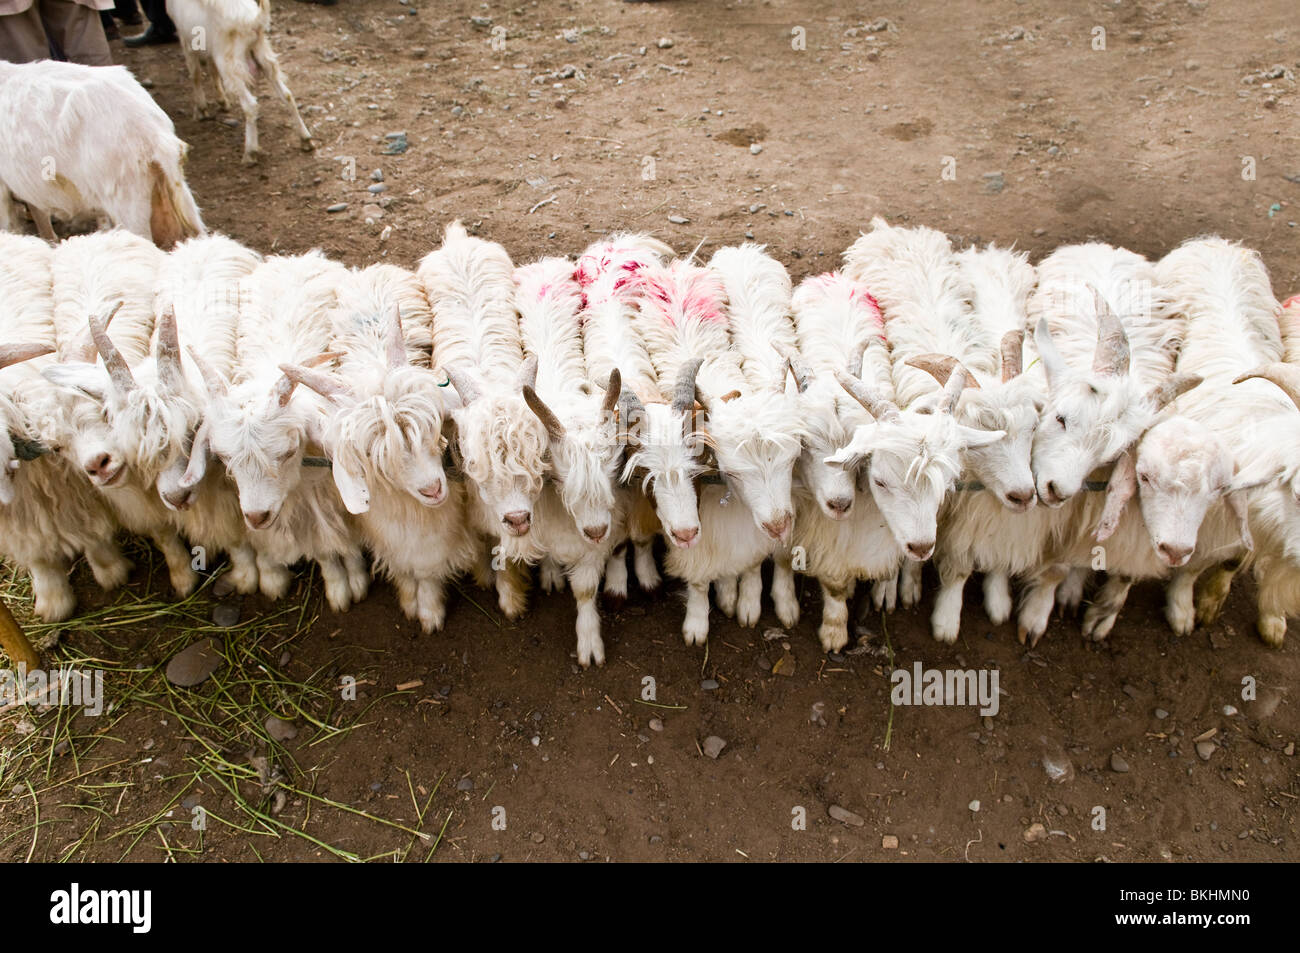 Goats tied together in the colorful Sunday market in Kashgar. - Stock Image